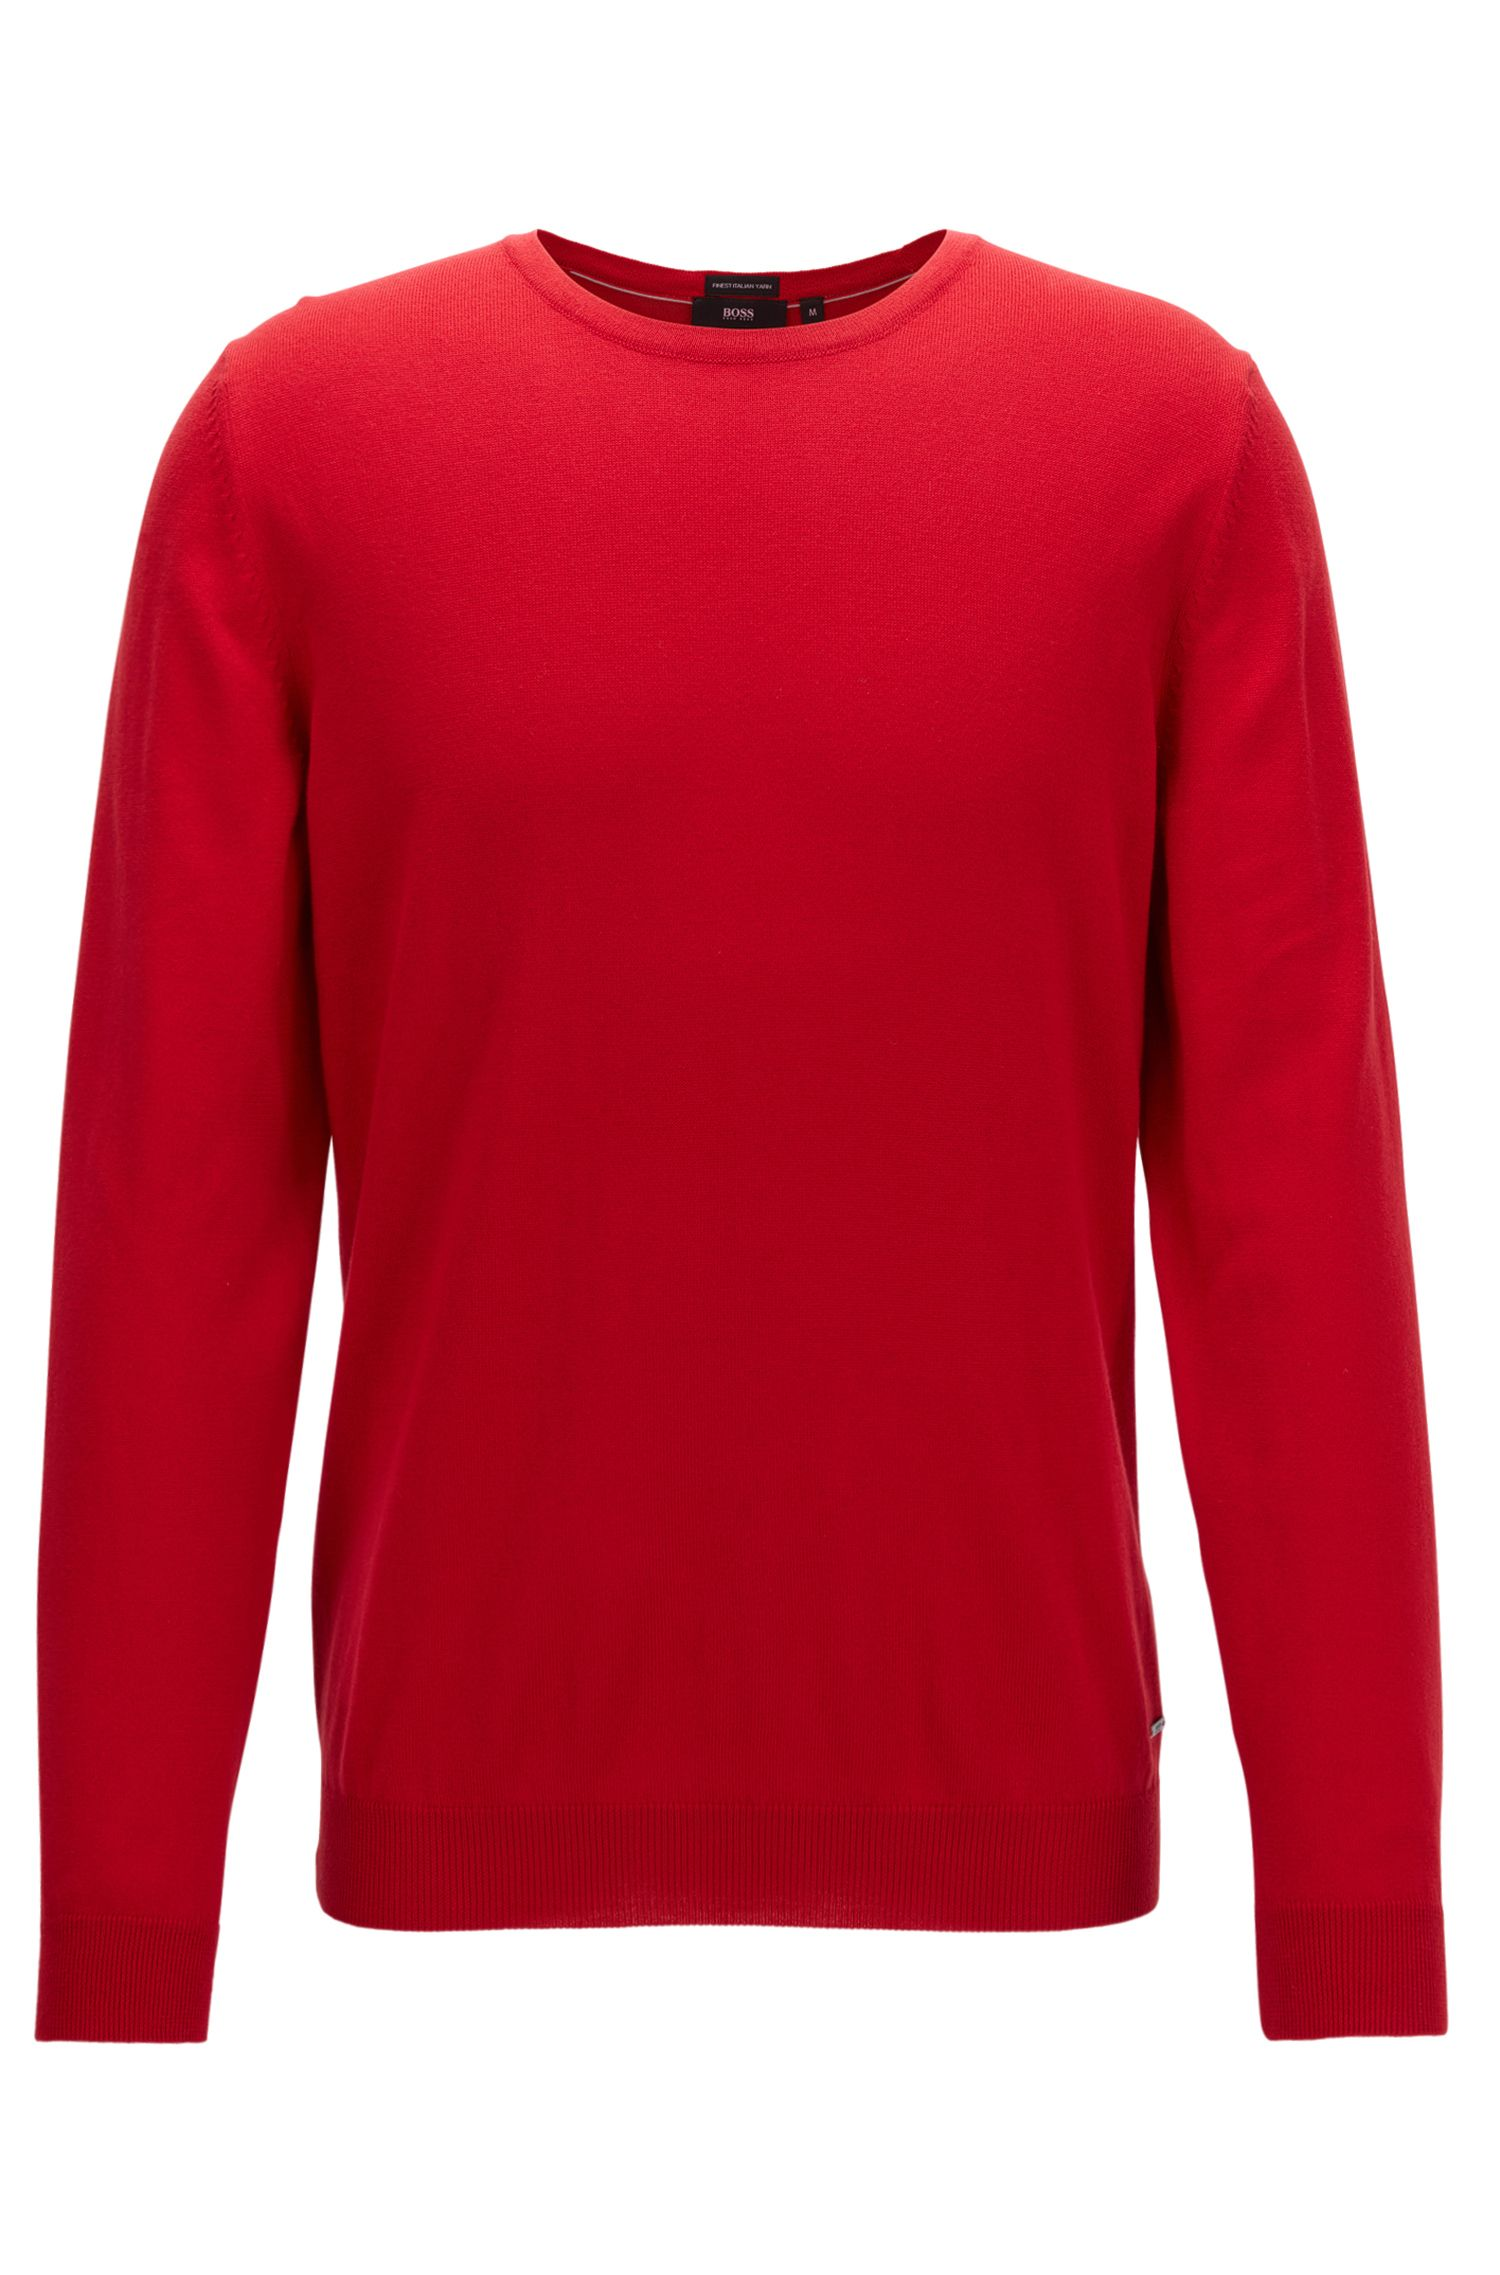 Crew-neck sweater in fine Italian cotton